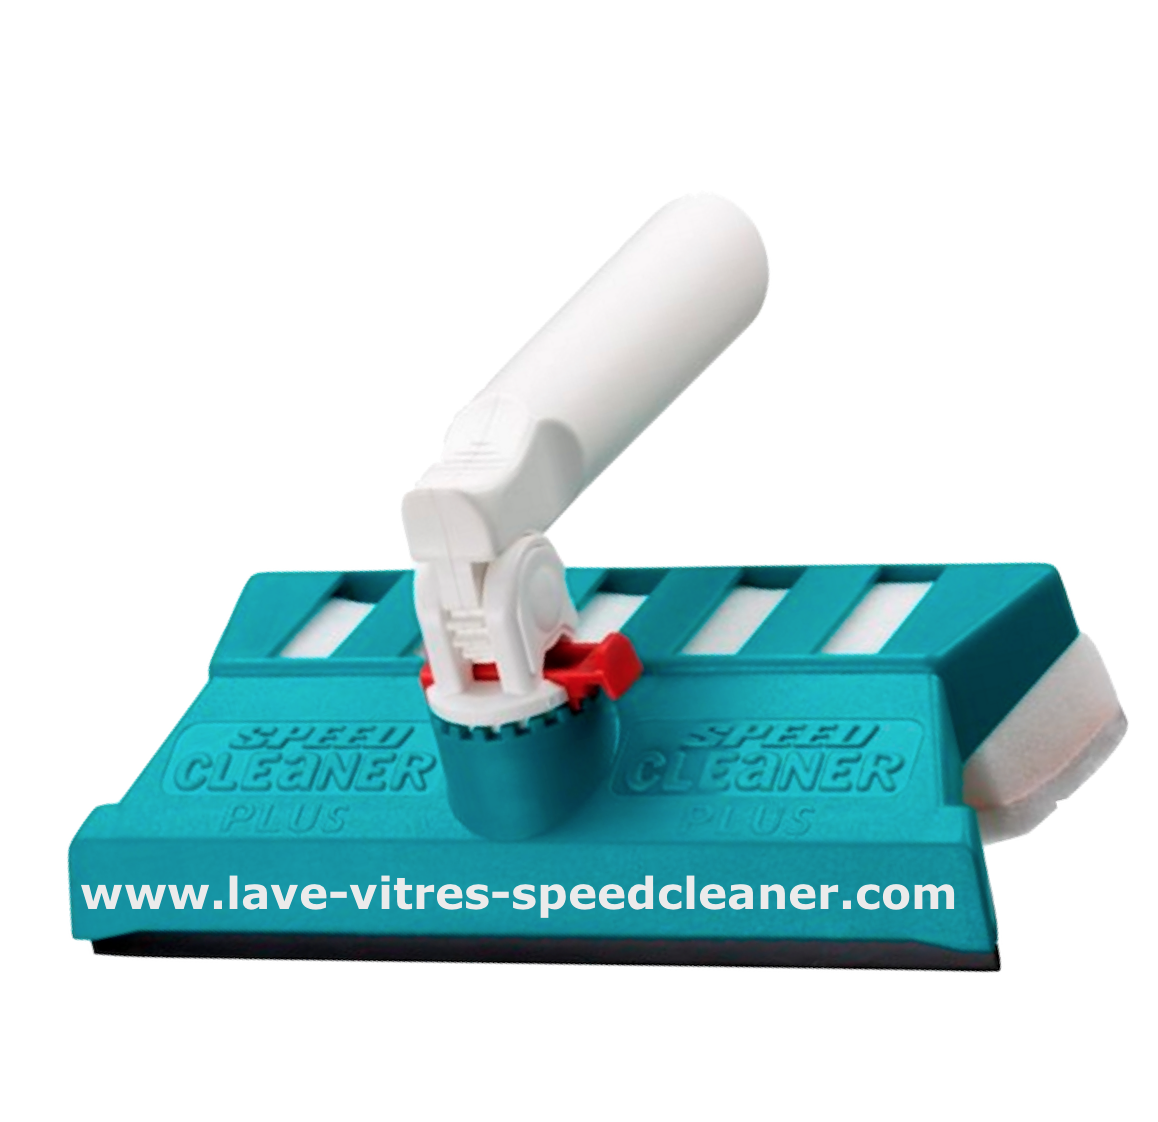 Speed Cleaner Single+ 20cm